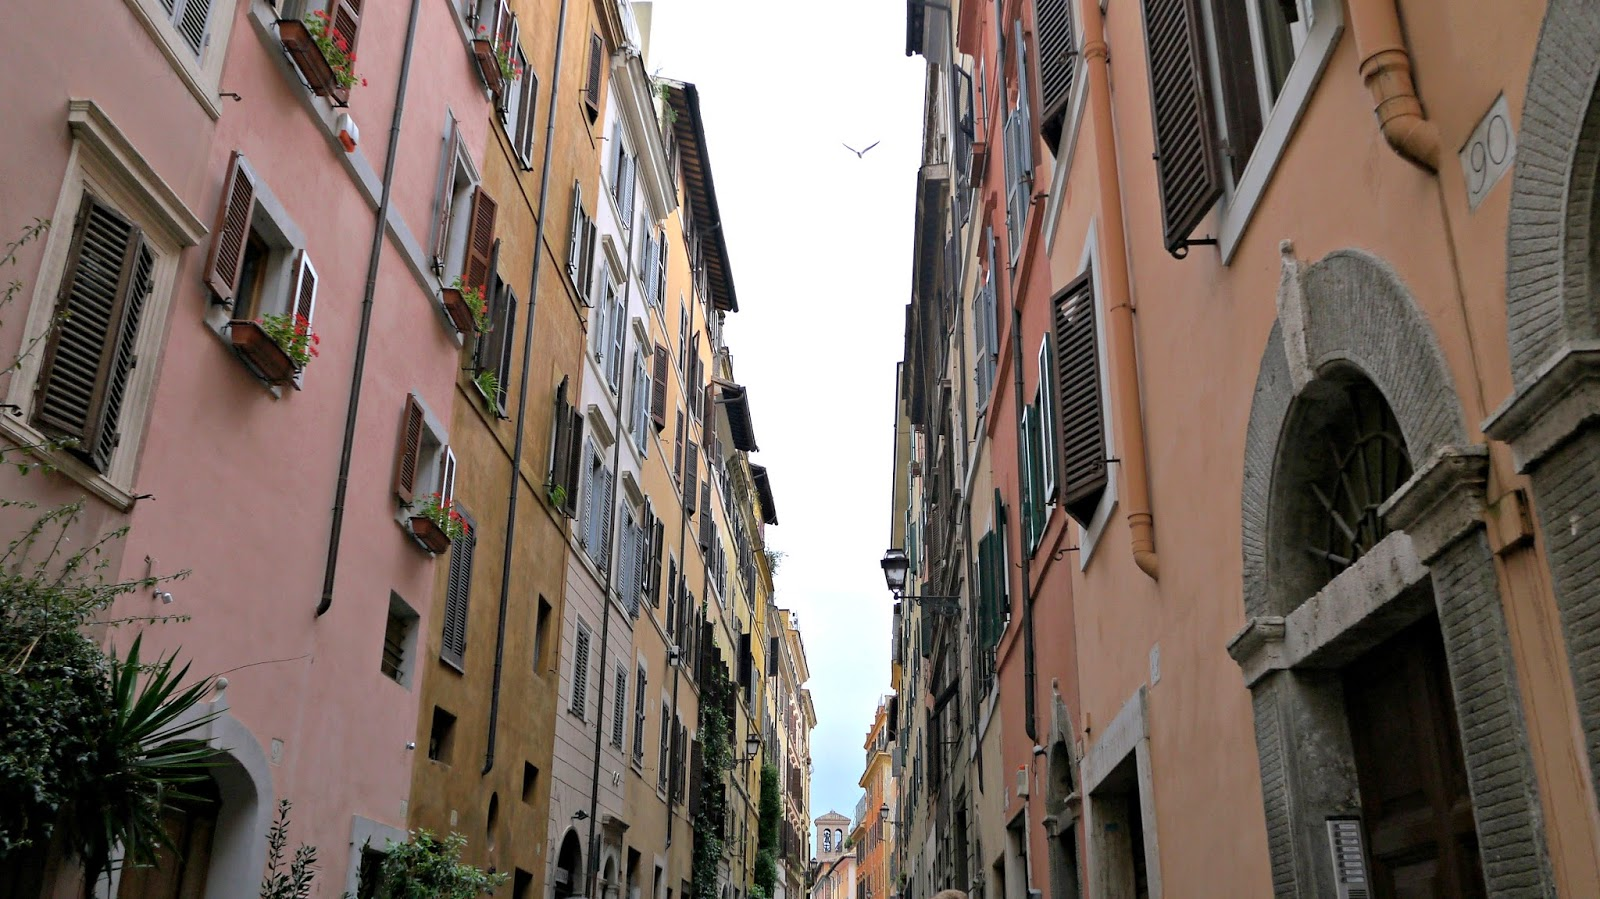 Colourful old street in Rome Italy